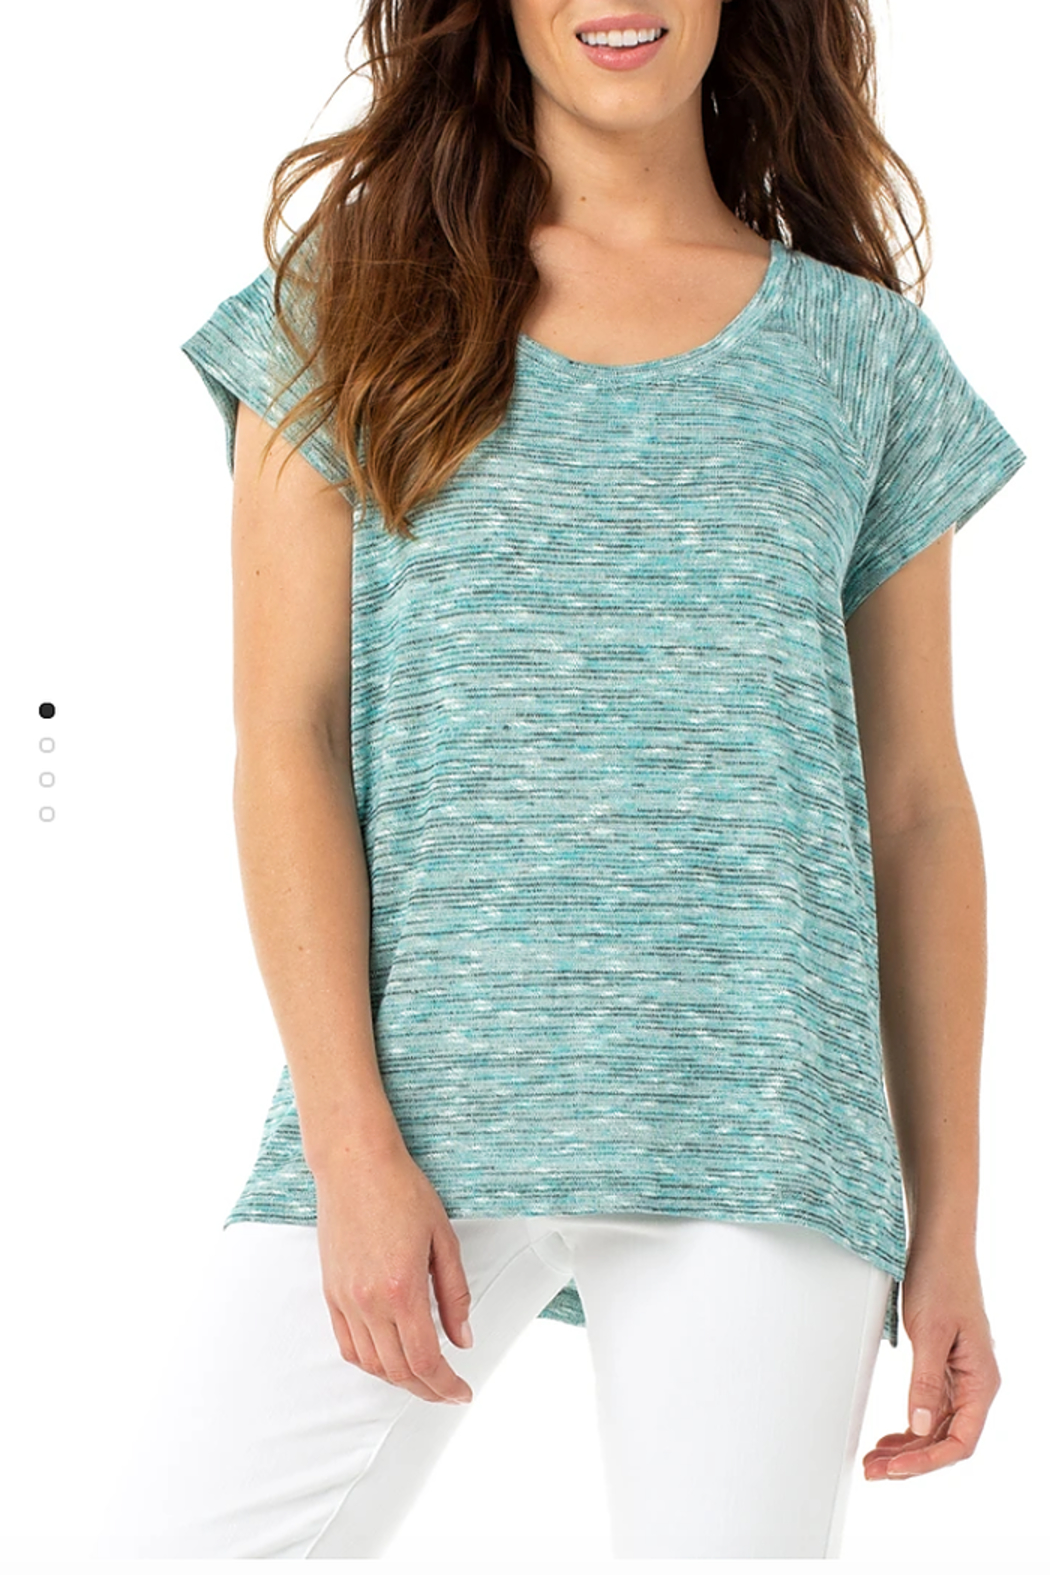 Liverpool Oversized Dolman Knit Top - Main Image